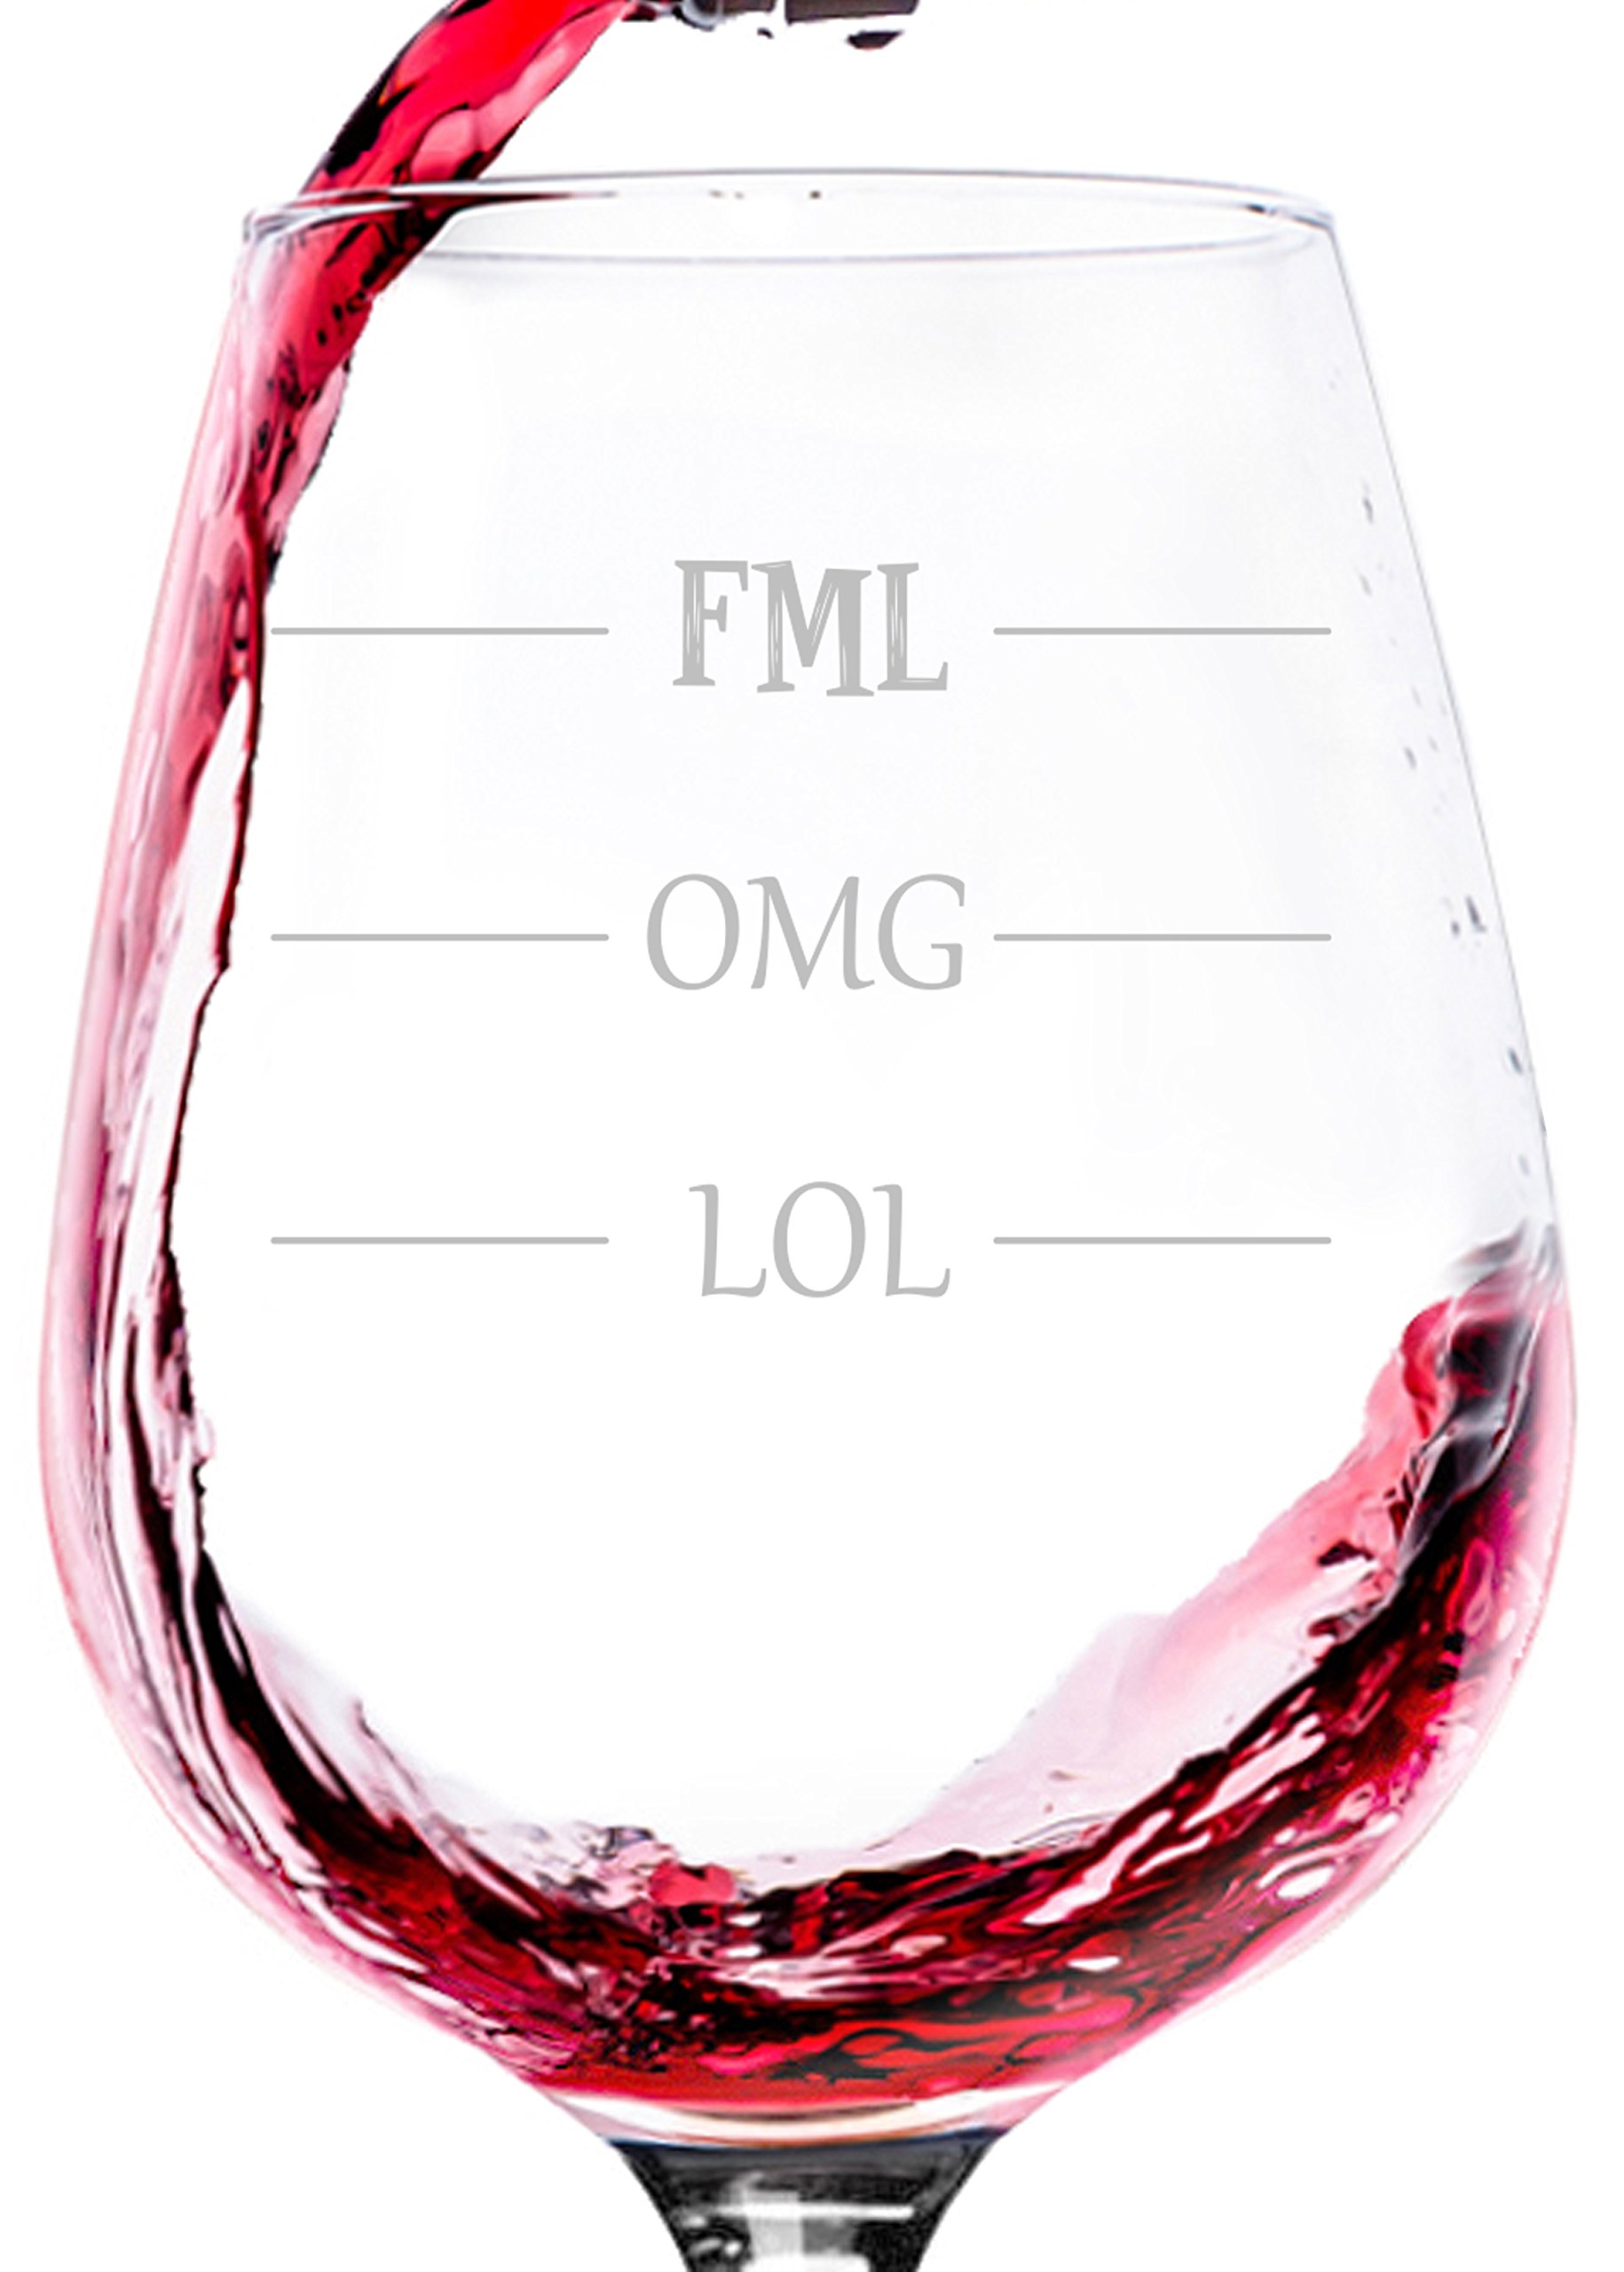 3fcfabc32e3 LOL-OMG-FML Funny Wine Glass - Best Birthday Gifts For Mom, Dad - Unique  Gift For Men, Women, Him, Her - Cool Present Idea From Husband, Wife, Son  or ...